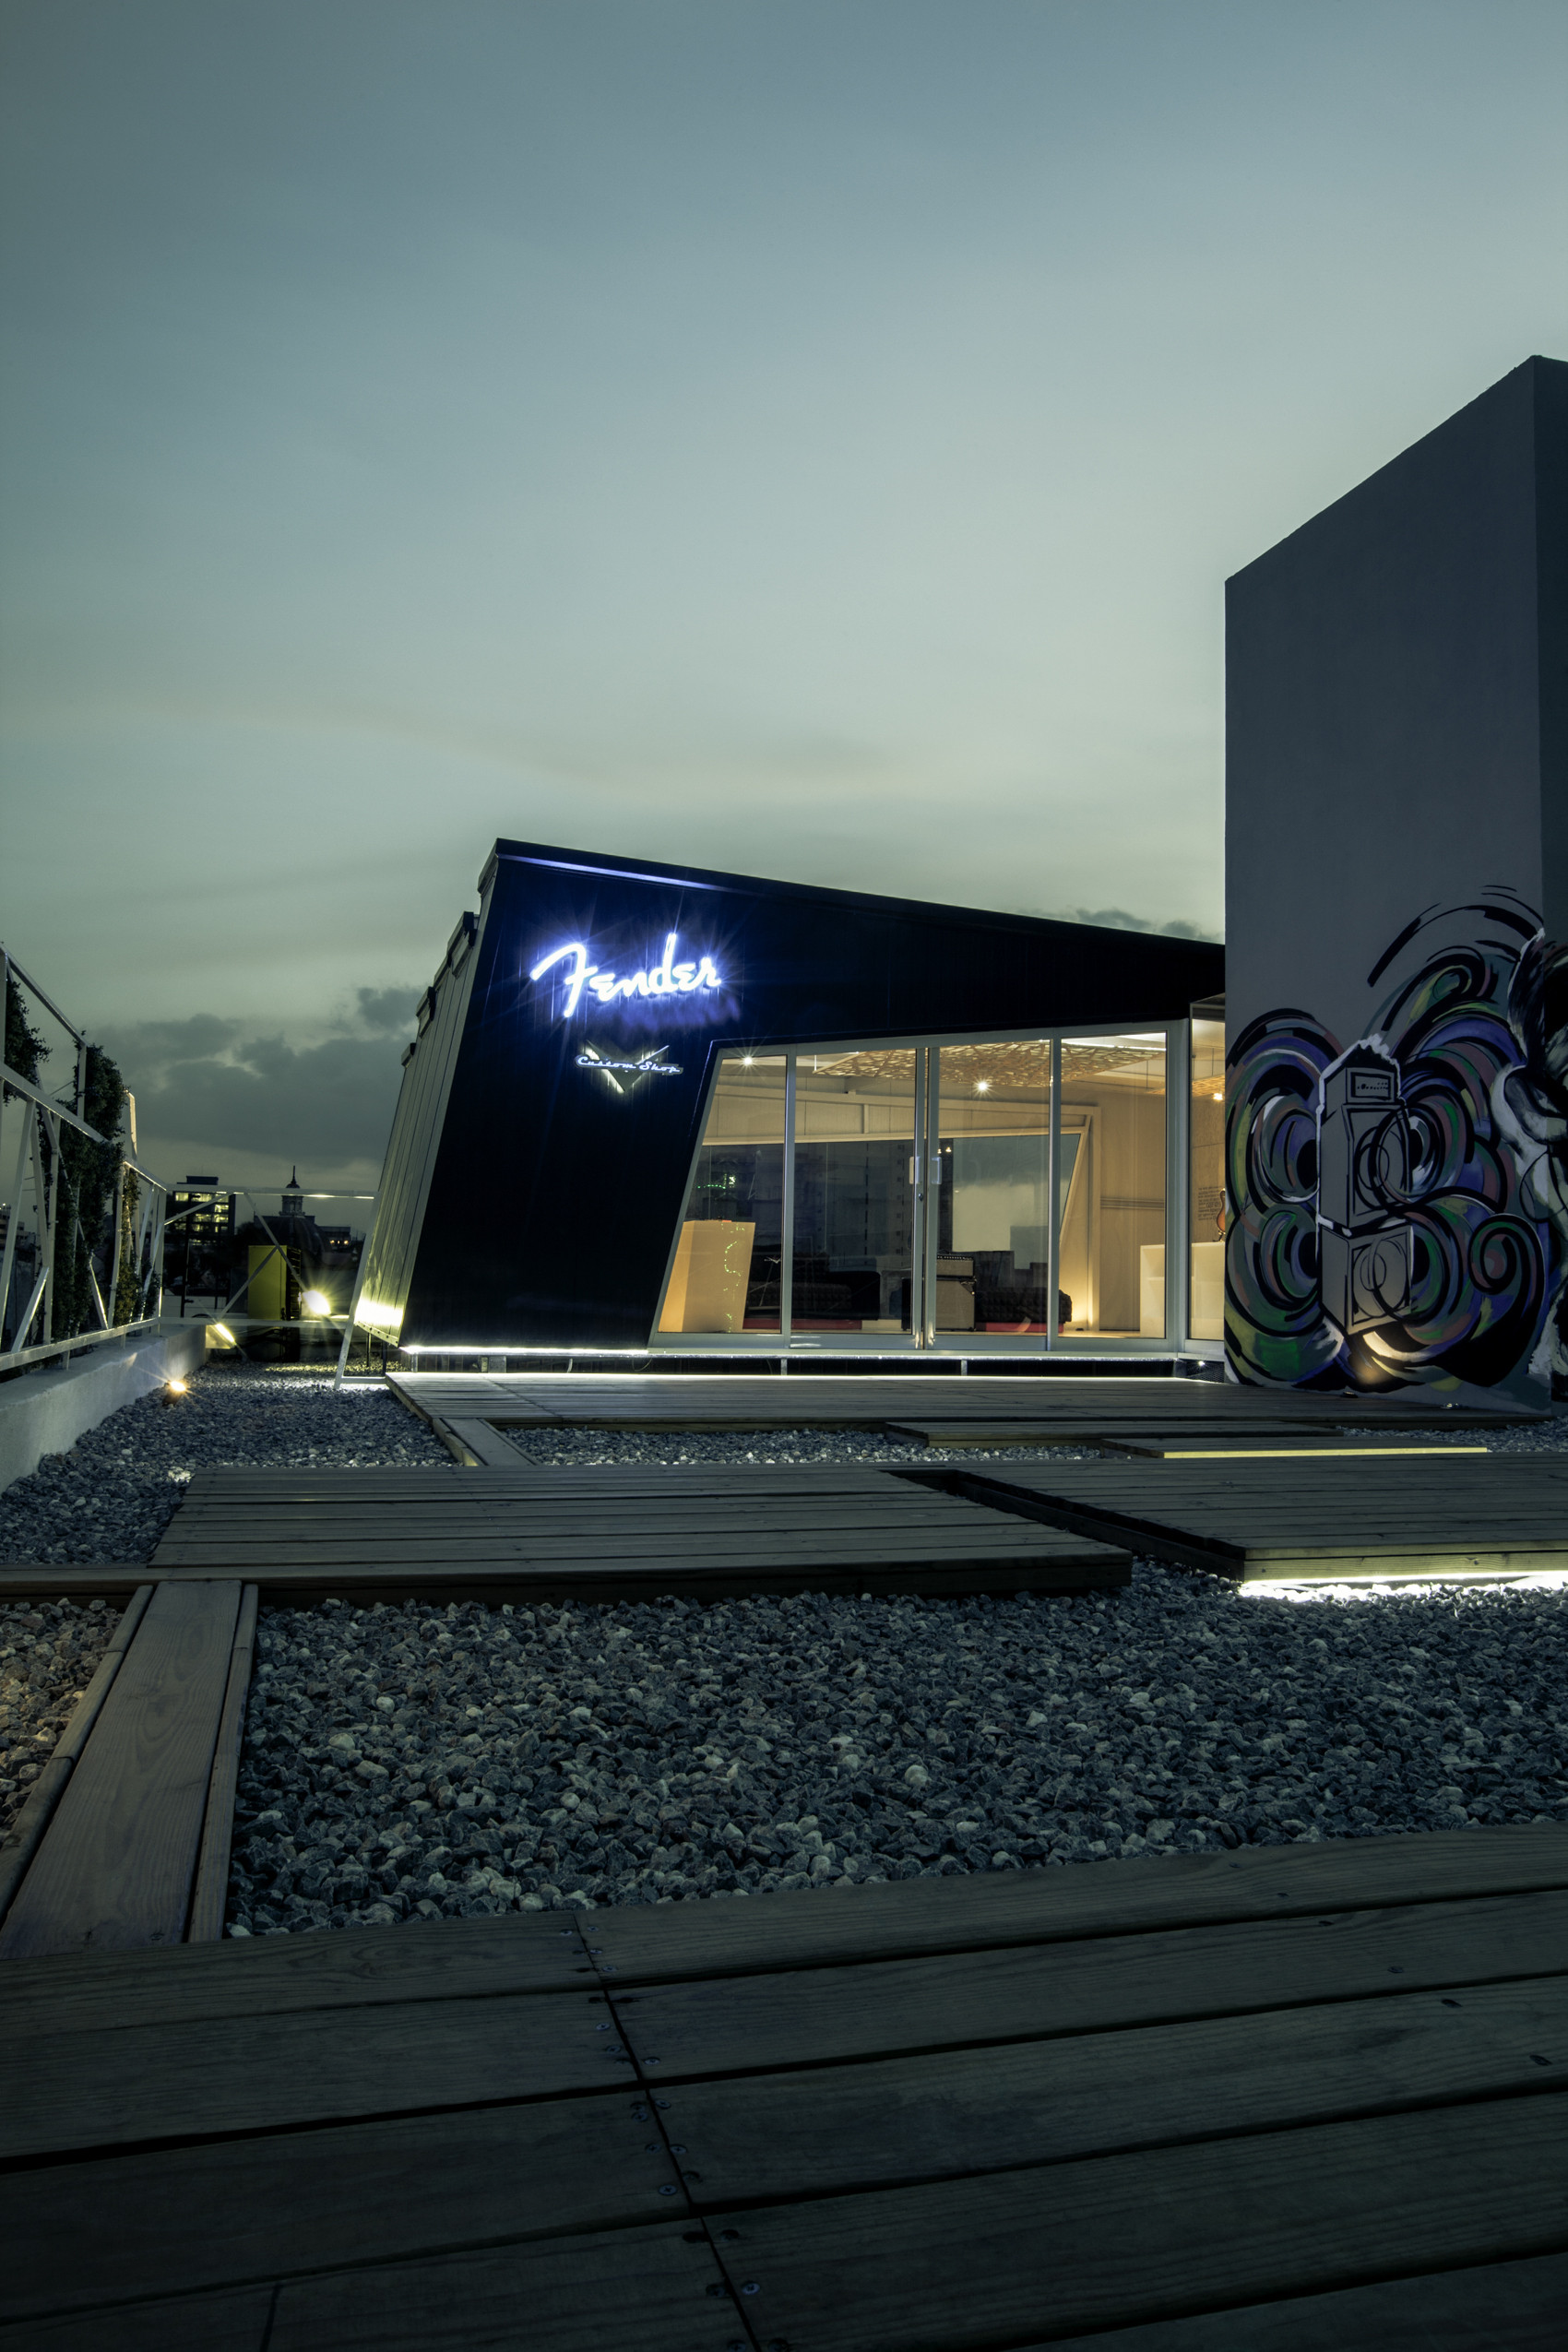 Ferder Custom Shop Mexico City / Arquitectura en Movimiento